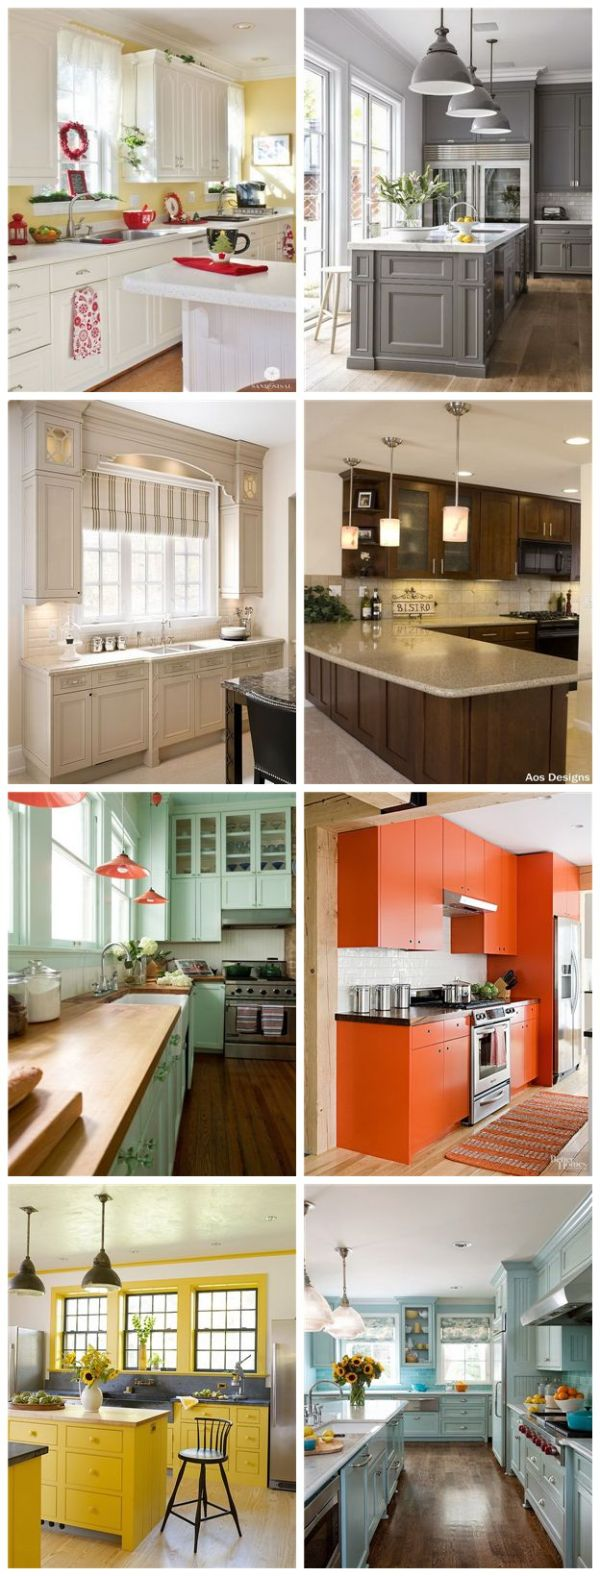 most popular kitchen cabinet paint color ideas best rated kitchen cabinets Most Popular Kitchen Cabinet Paint Color Ideas